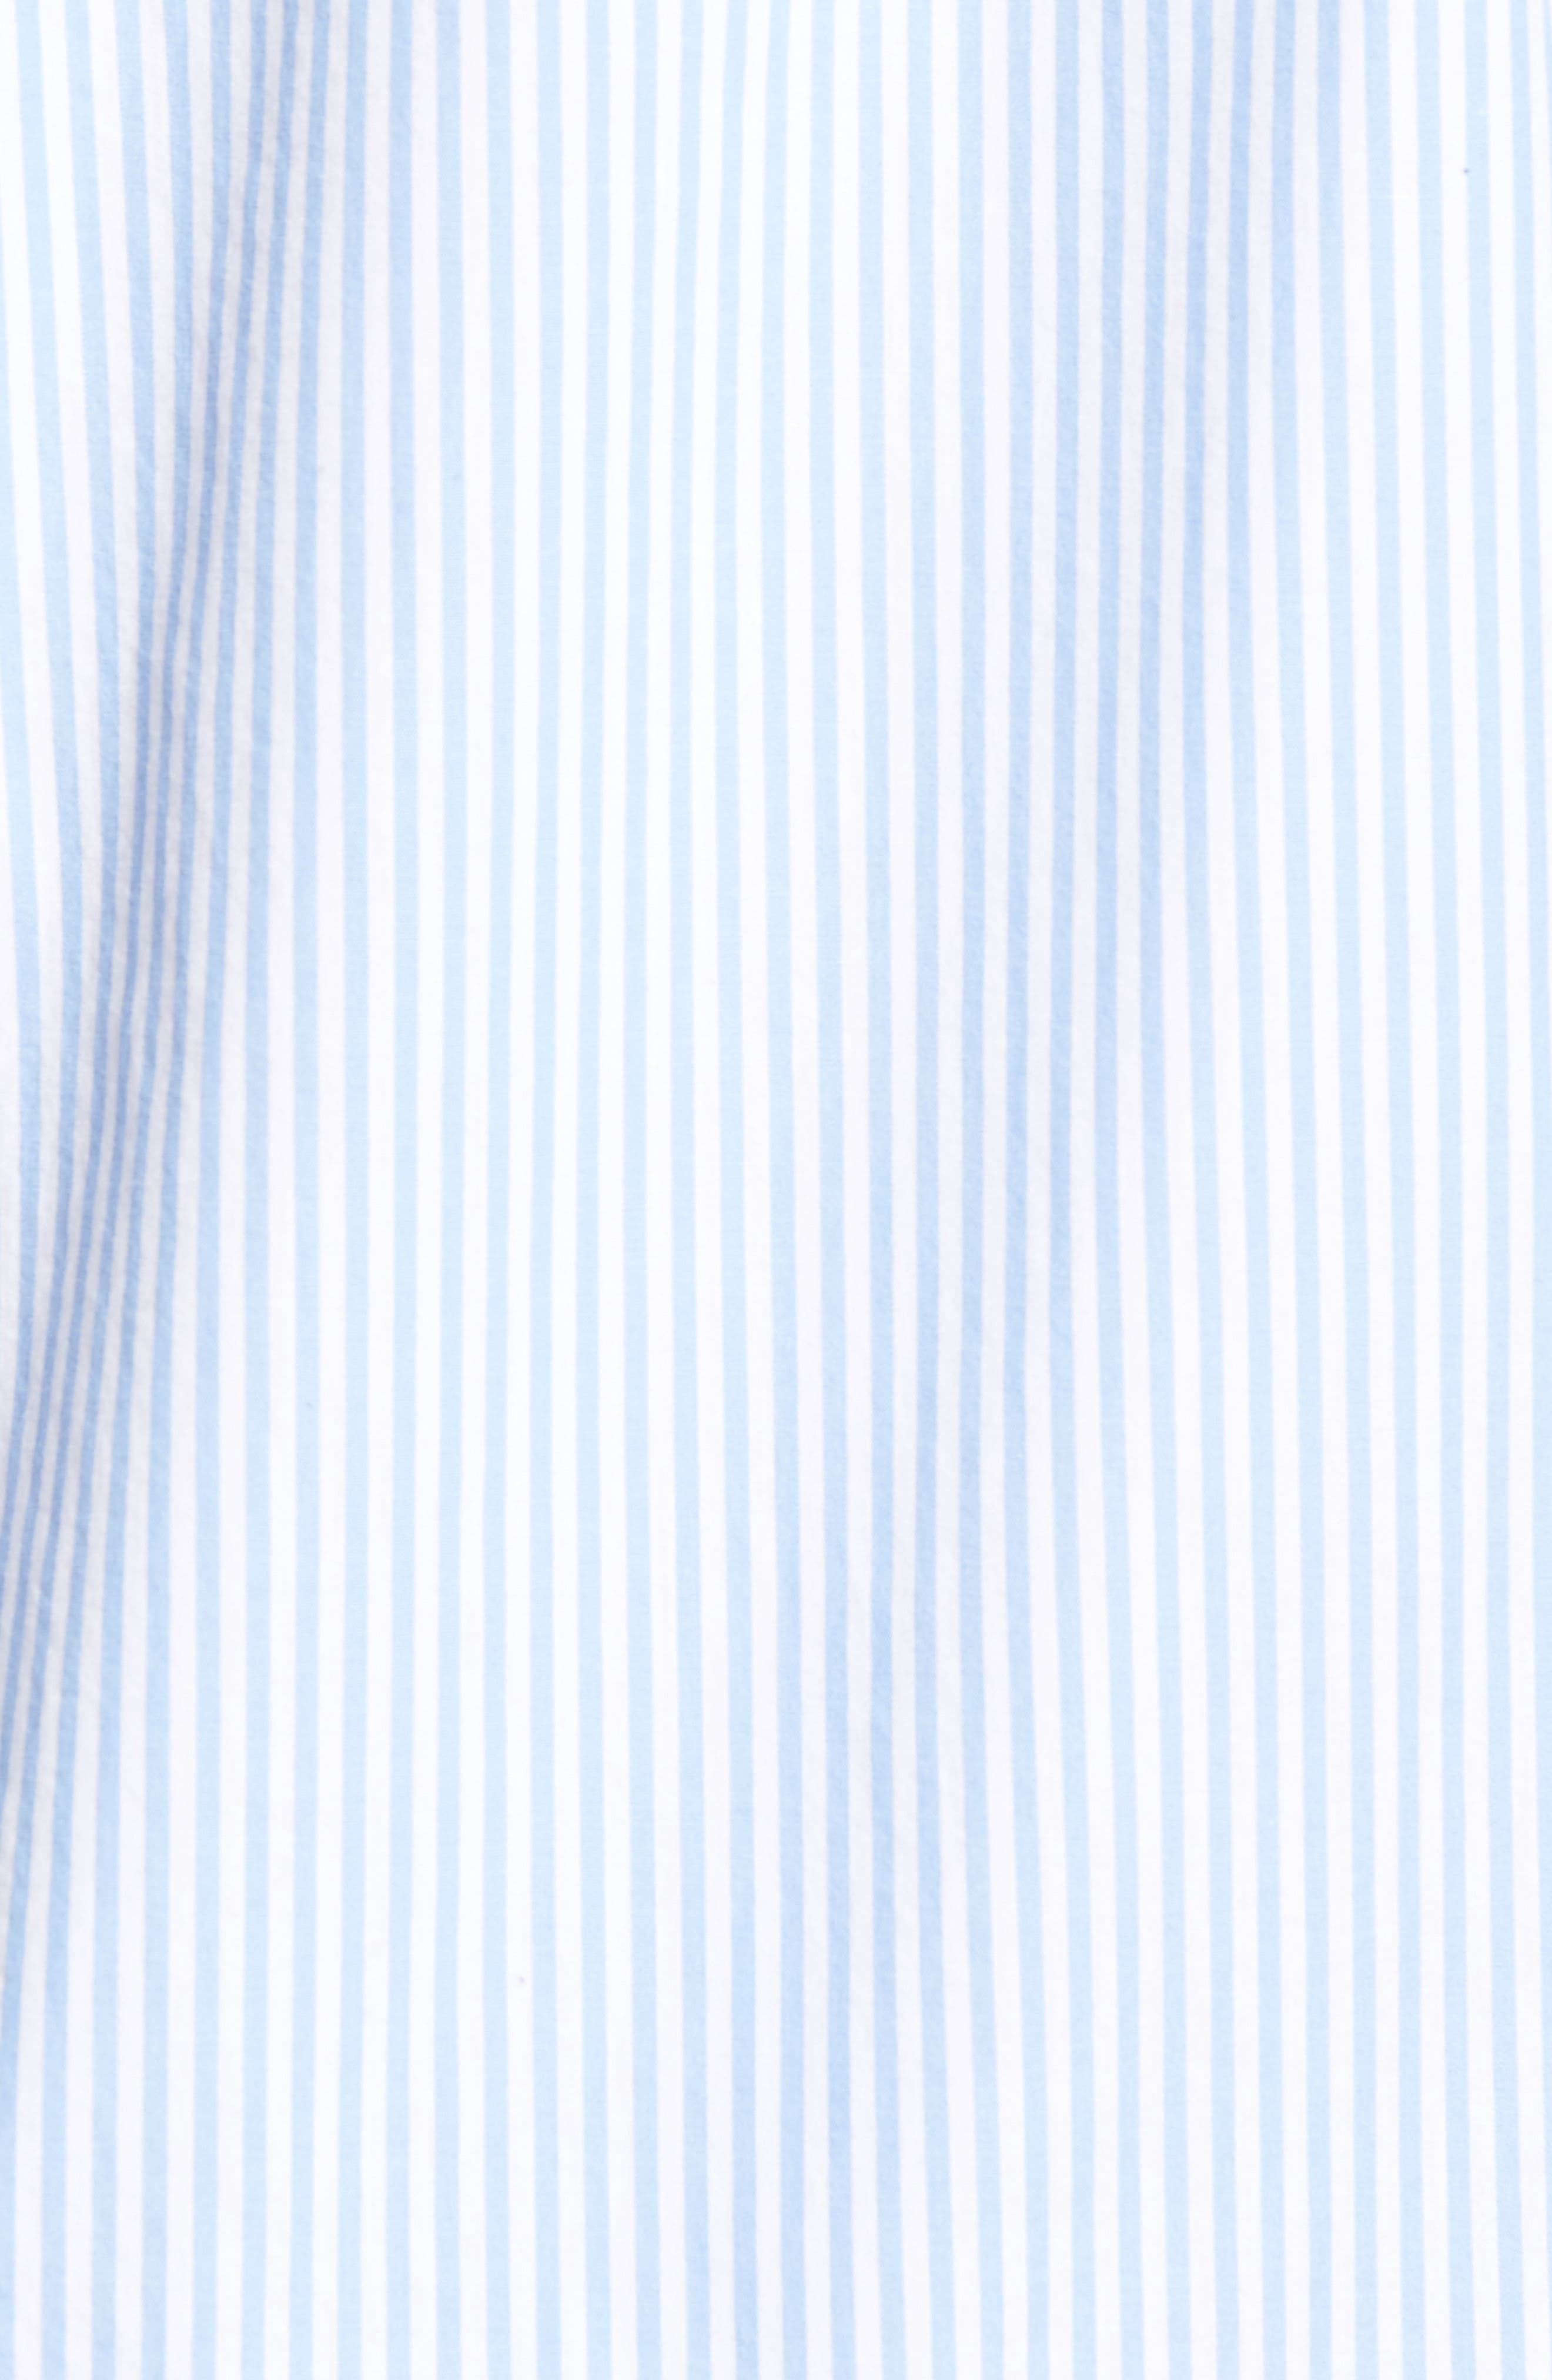 Patchwork Relaxed Fit Sport Shirt,                             Alternate thumbnail 5, color,                             416